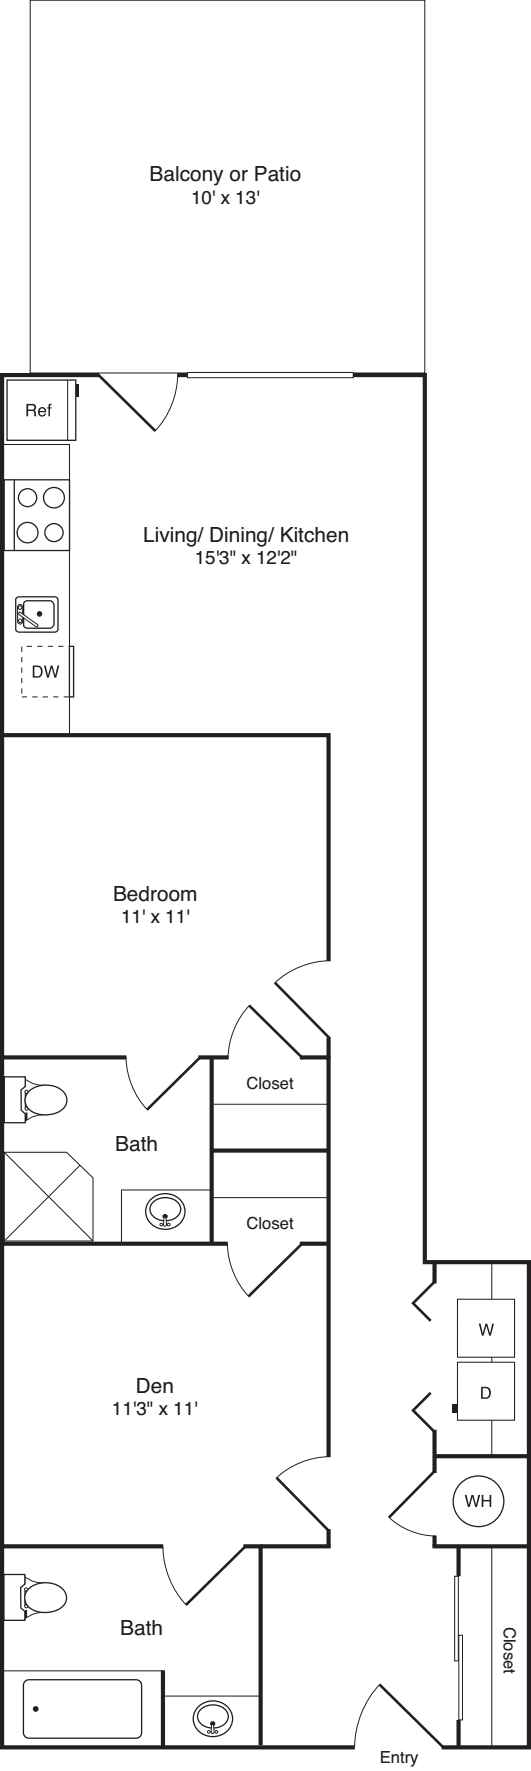 1 Bedroom w/ Den